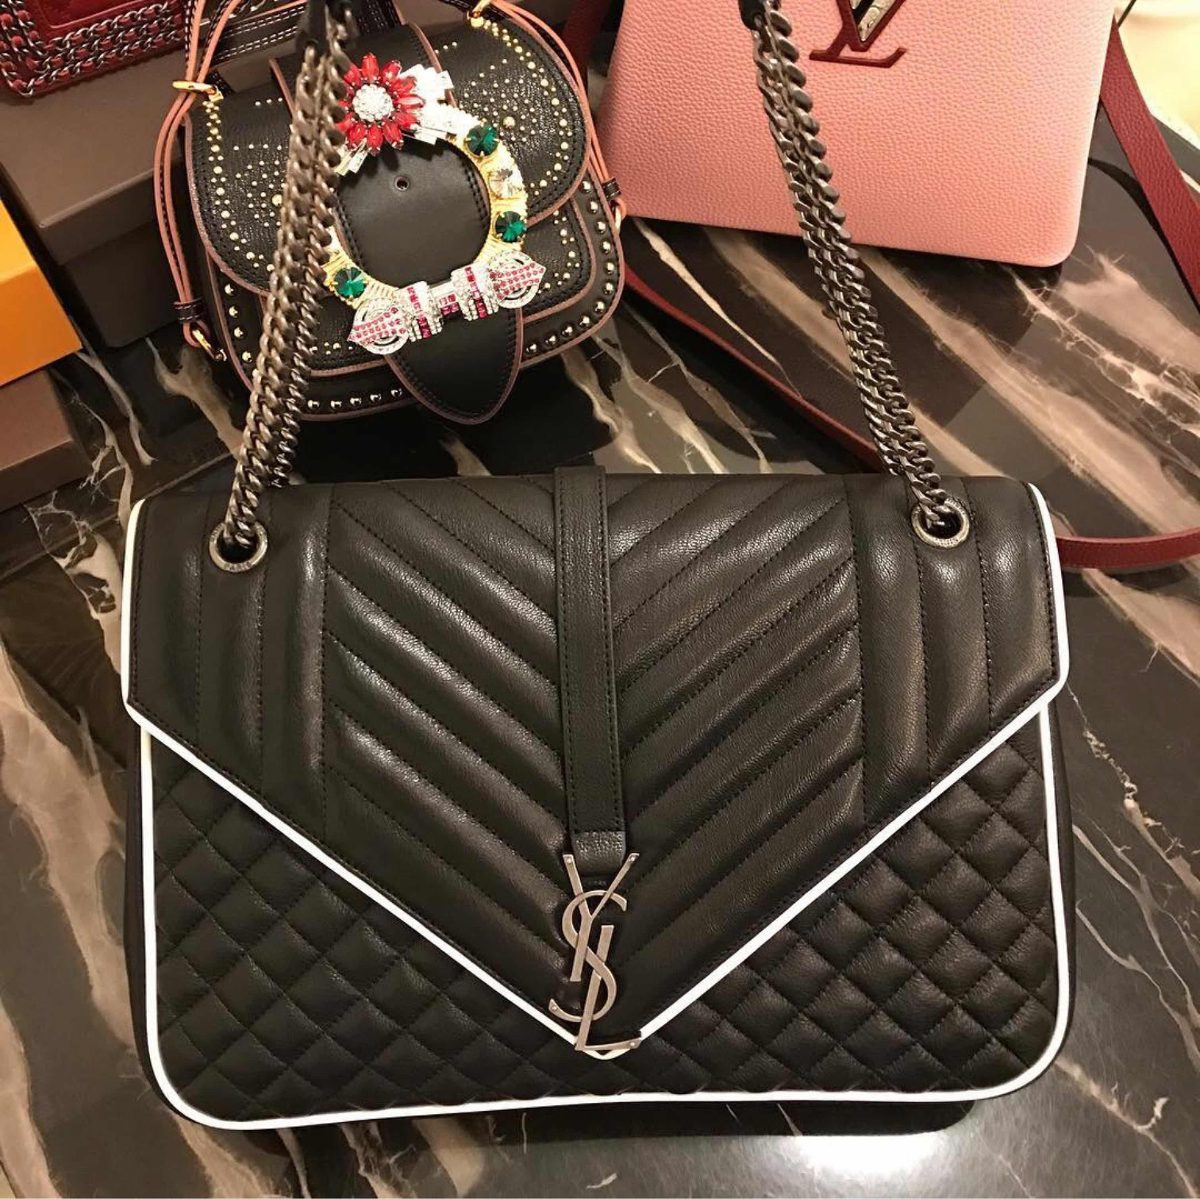 bolsa yves saint laurent evenlope 24 cm 6 500 00 en mercado libre